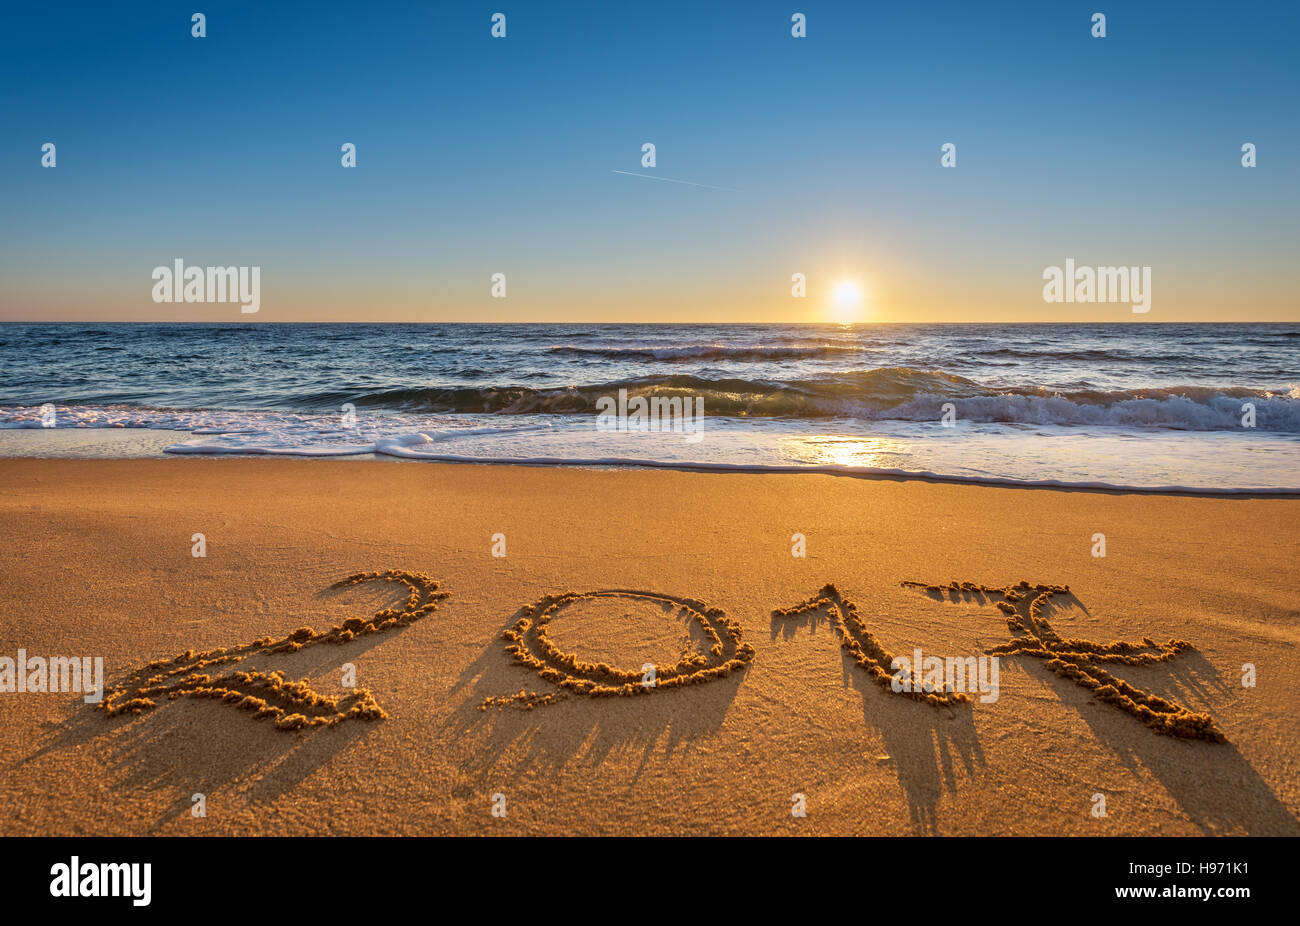 Number 2017 written on seashore sand at sunrise. Concept of upcoming new year and passing of time. - Stock Image